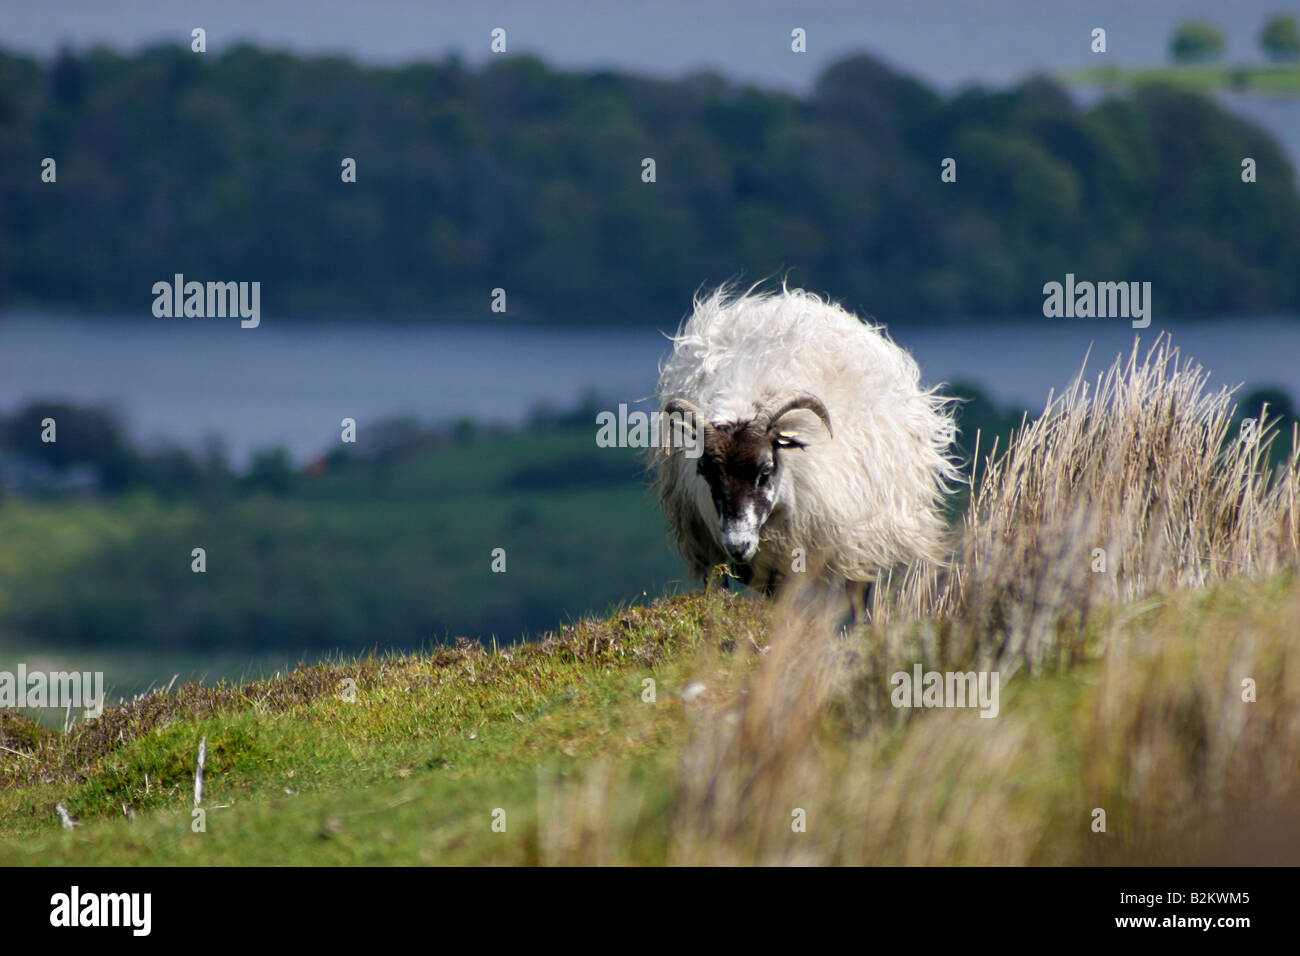 Domestic mountain sheep a very recognisable inhabitant of western and upland Ireland - Stock Image